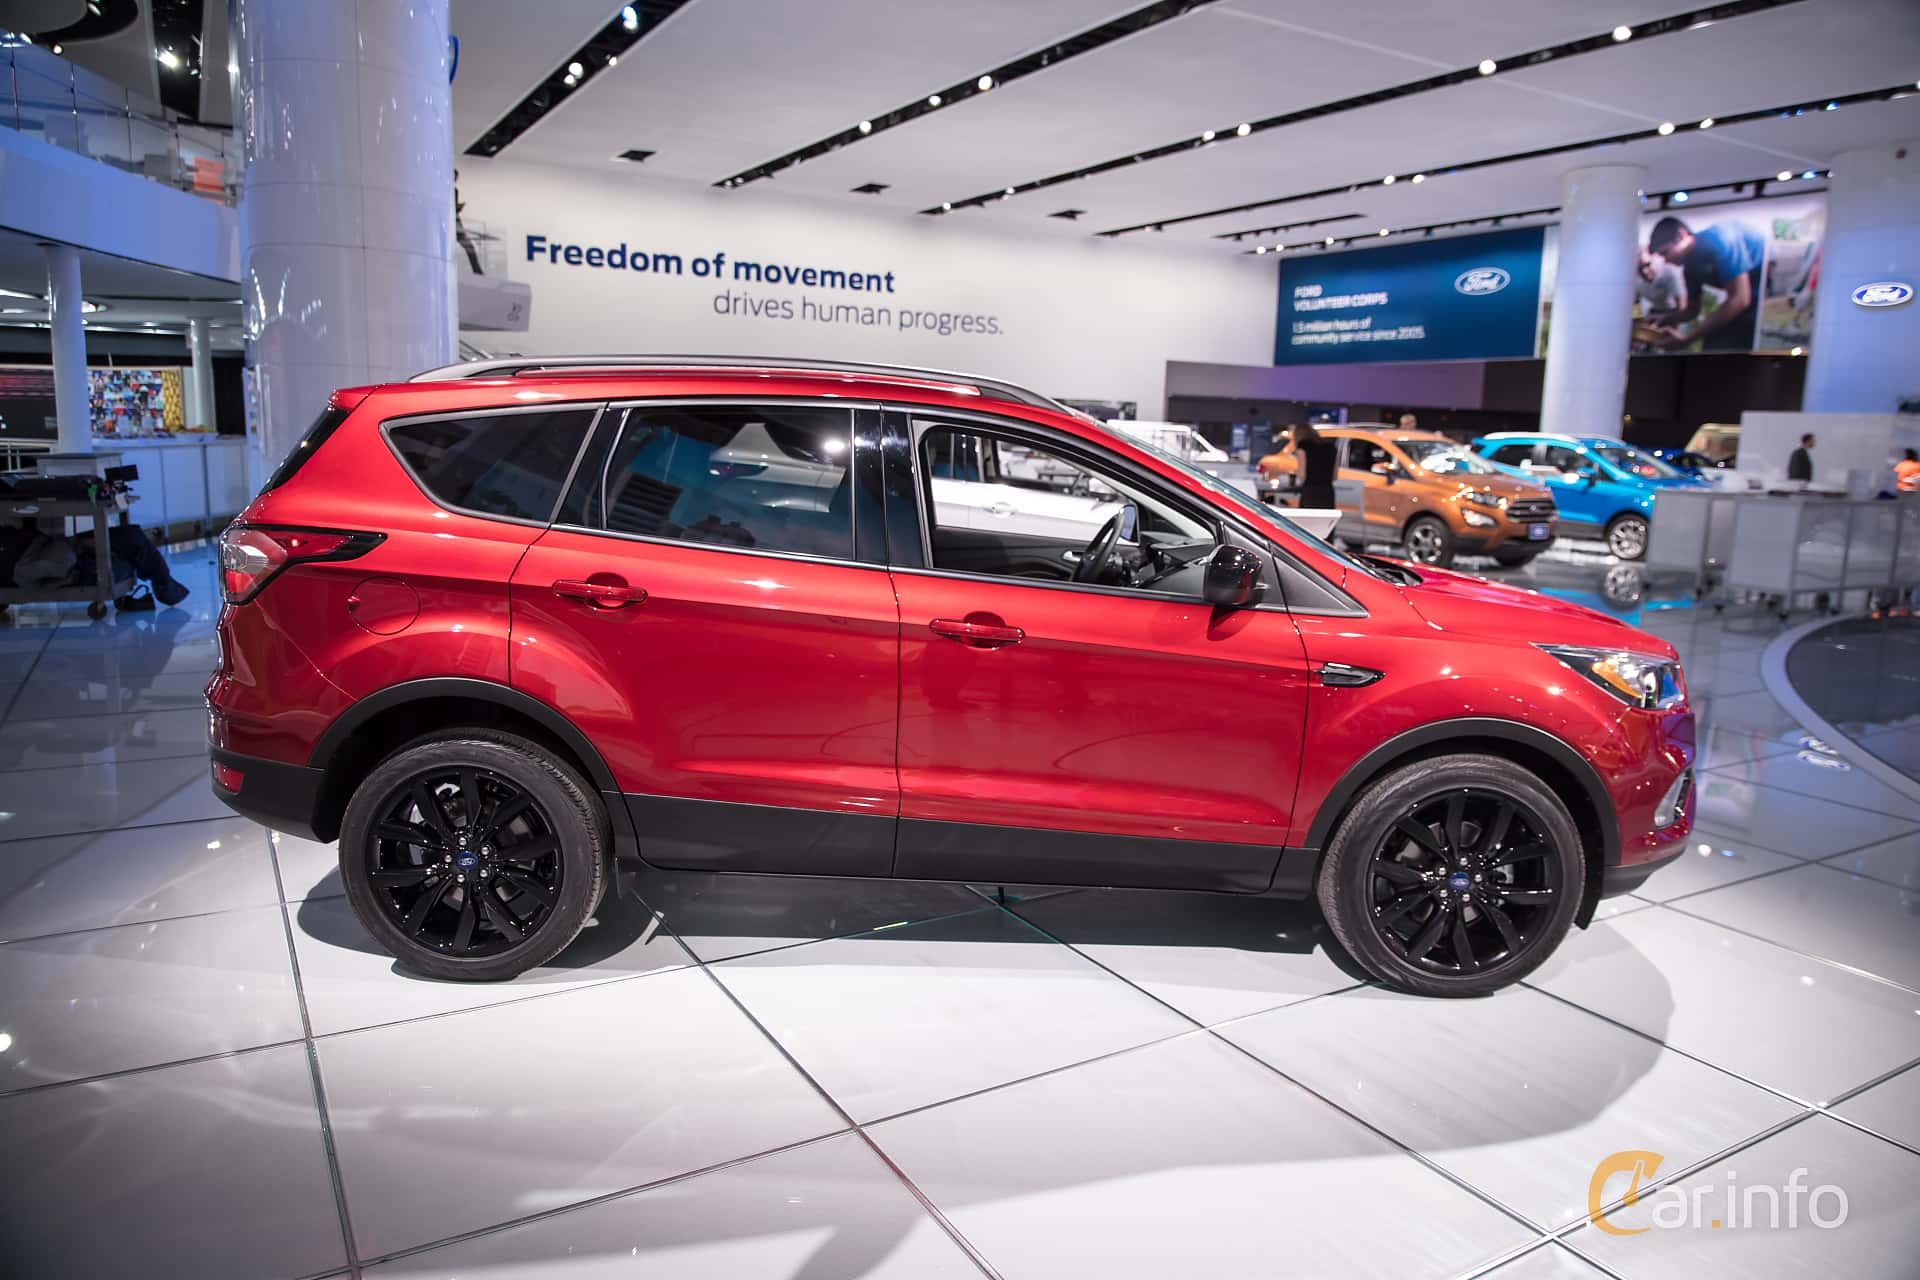 Ford Escape 1.5 EcoBoost Automatic, 182hp, 2018 at North American International Auto Show 2018